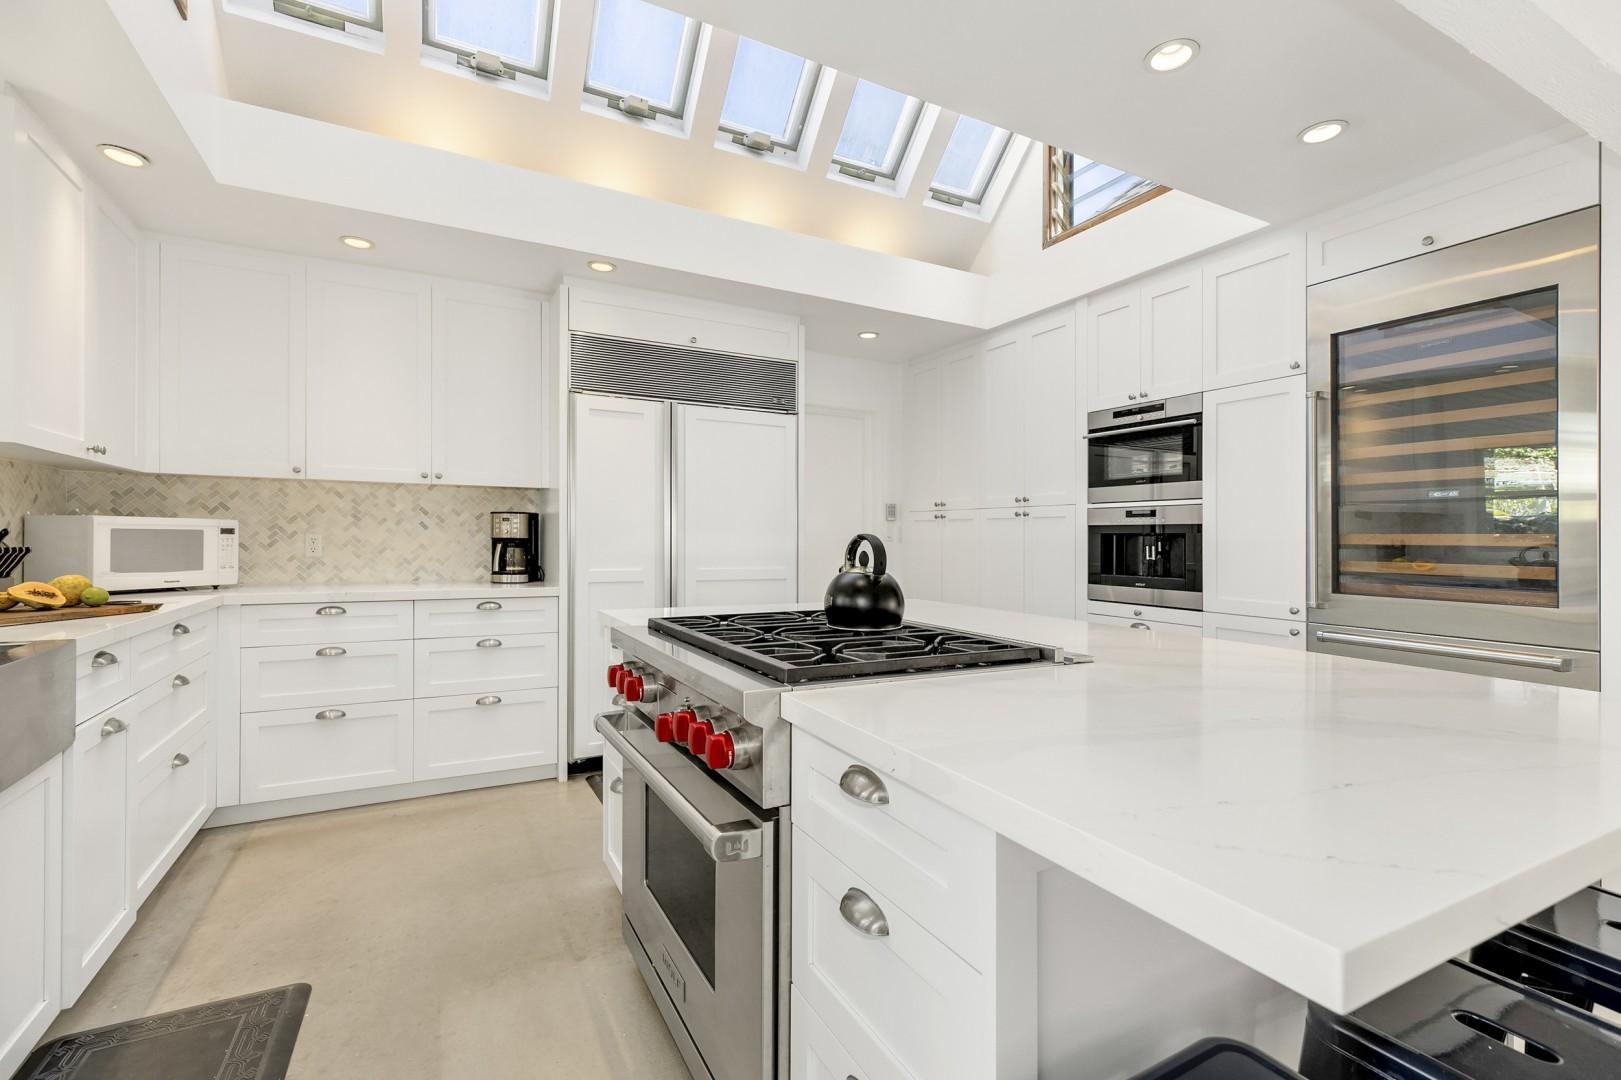 Newly remodeled kitchen with top of the line appliances.